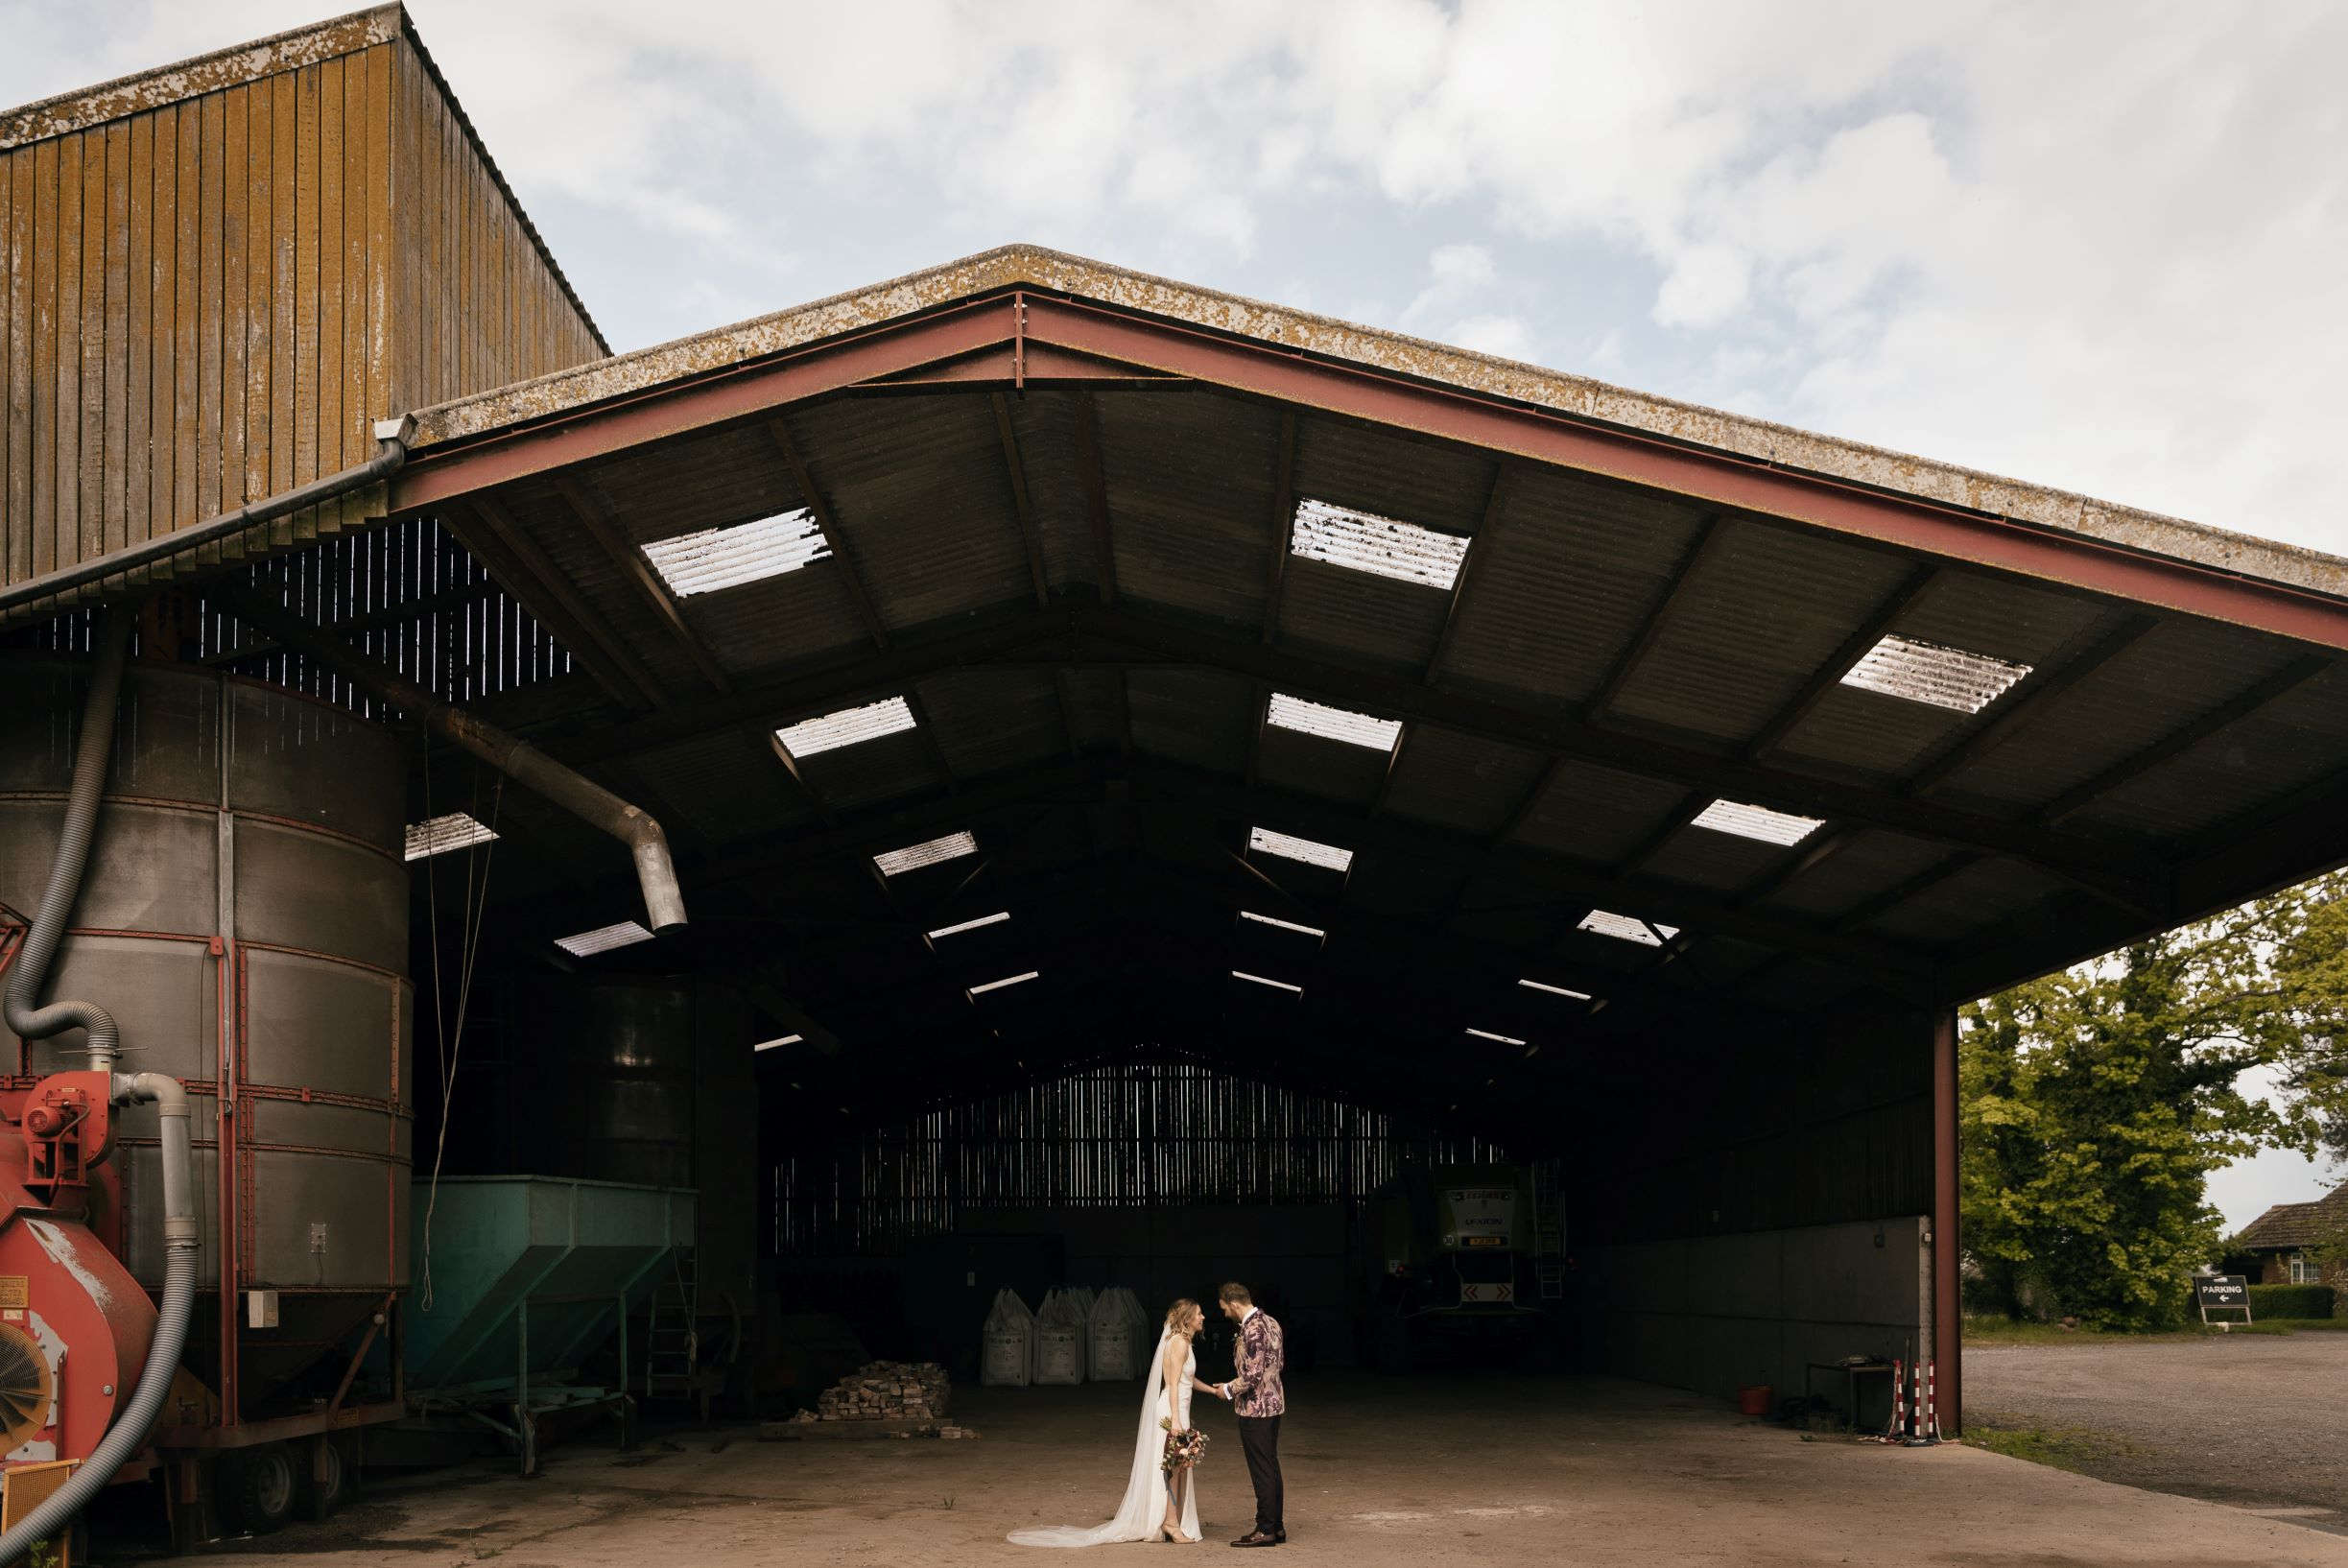 Emily & James in a massive Grain Shed. Photo by www.julesbarron.com